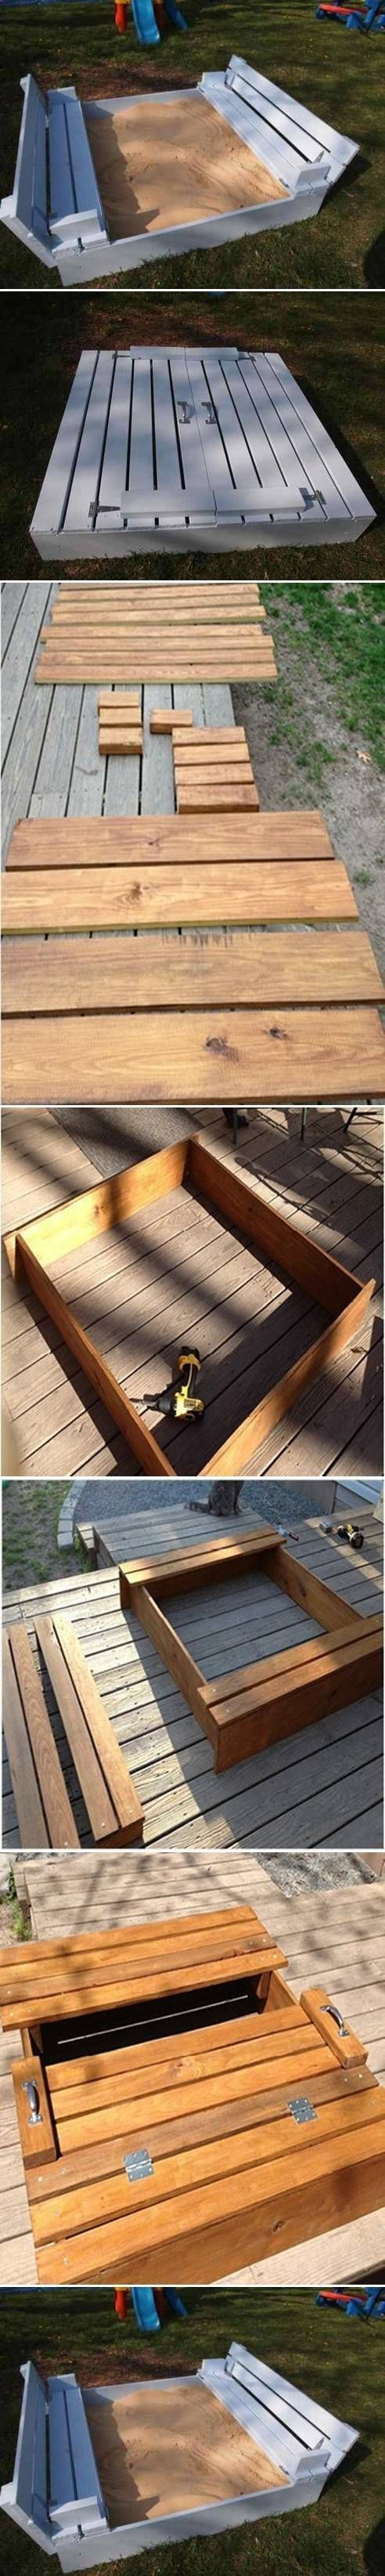 DIY Sandbox...note how the cover doubles as seats but would need to improvise to make it more water-proof